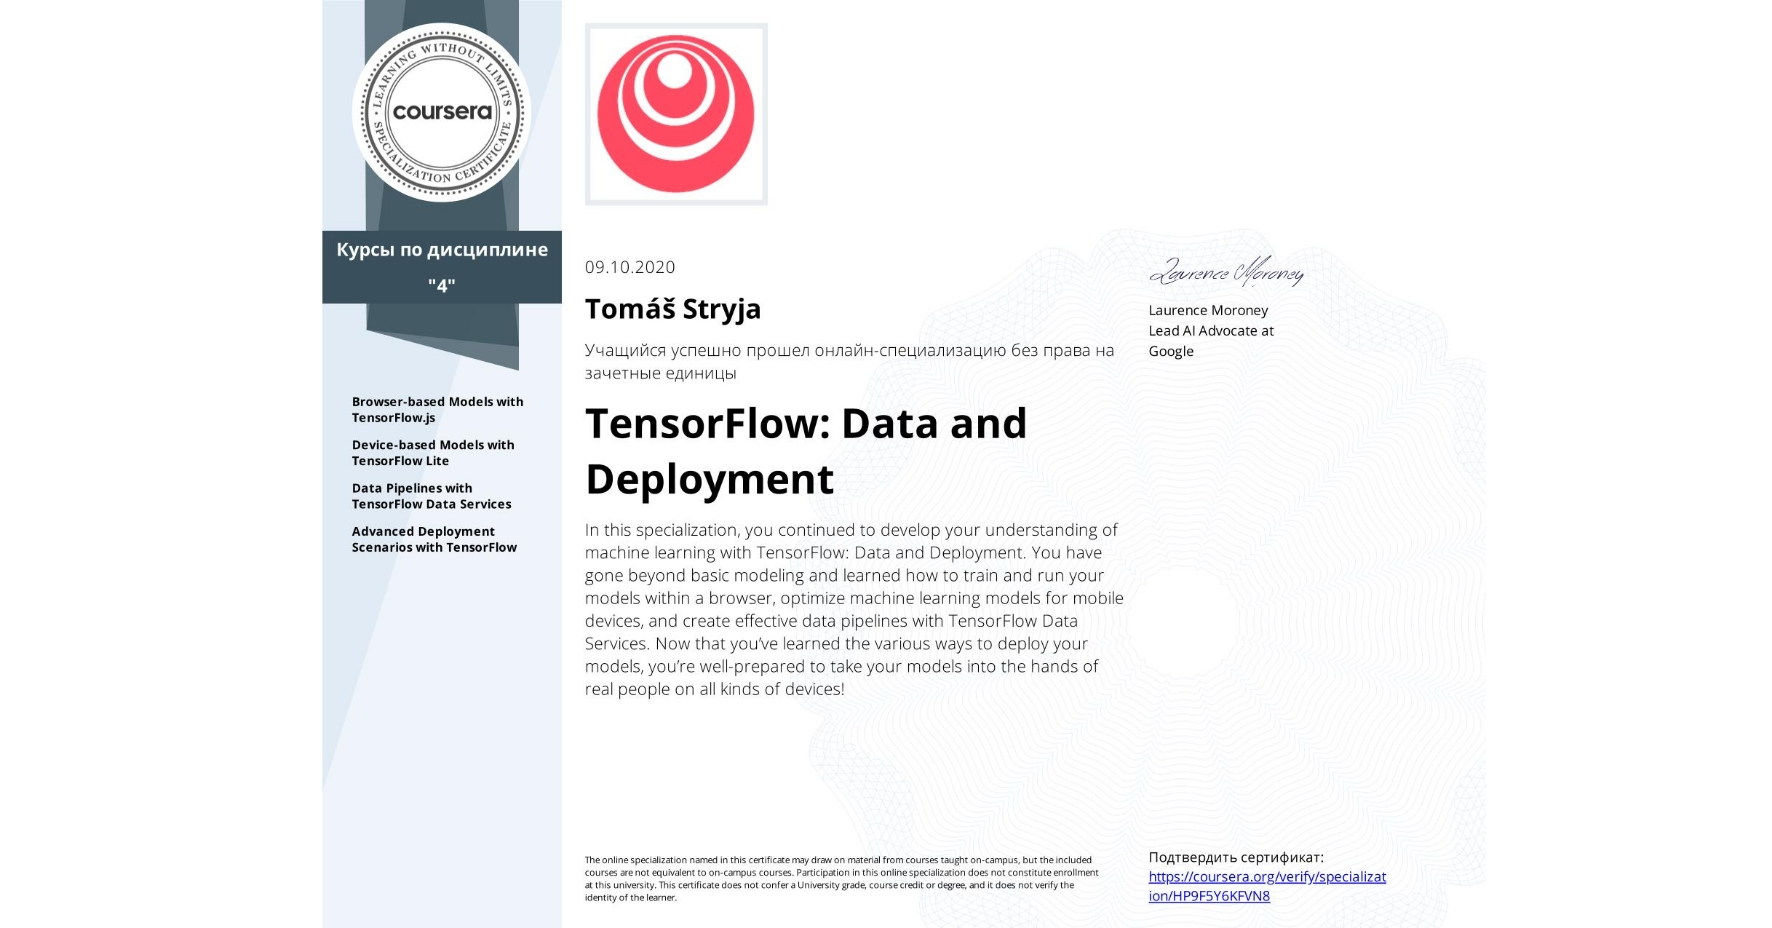 View certificate for Tomáš Stryja, TensorFlow: Data and Deployment, offered through Coursera. In this specialization, you continued to develop your understanding of machine learning with TensorFlow: Data and Deployment. You have gone beyond basic modeling and learned how to train and run your models within a browser, optimize machine learning models for mobile devices, and create effective data pipelines with TensorFlow Data Services. Now that you've learned the various ways to deploy your models, you're well-prepared to take your models into the hands of real people on all kinds of devices!